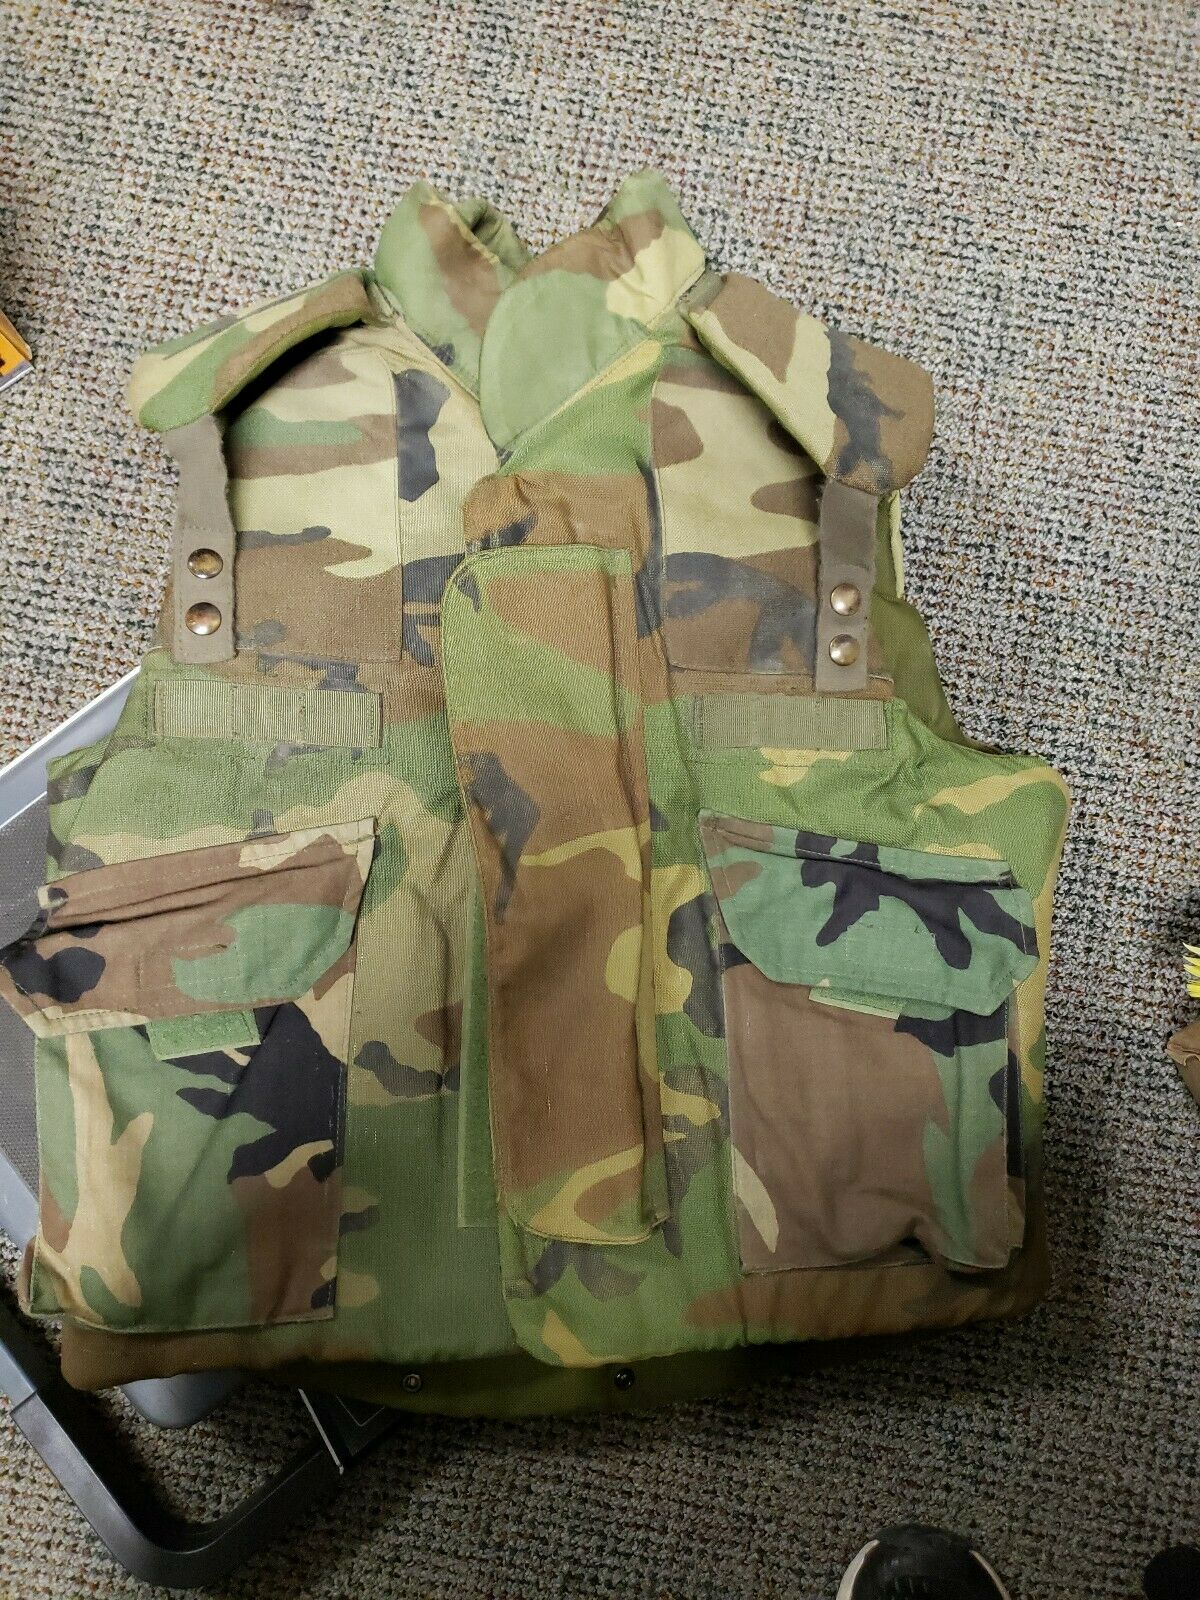 1980 body armor, fragmentaion predective  vest, ground troops small  fishional store for sale